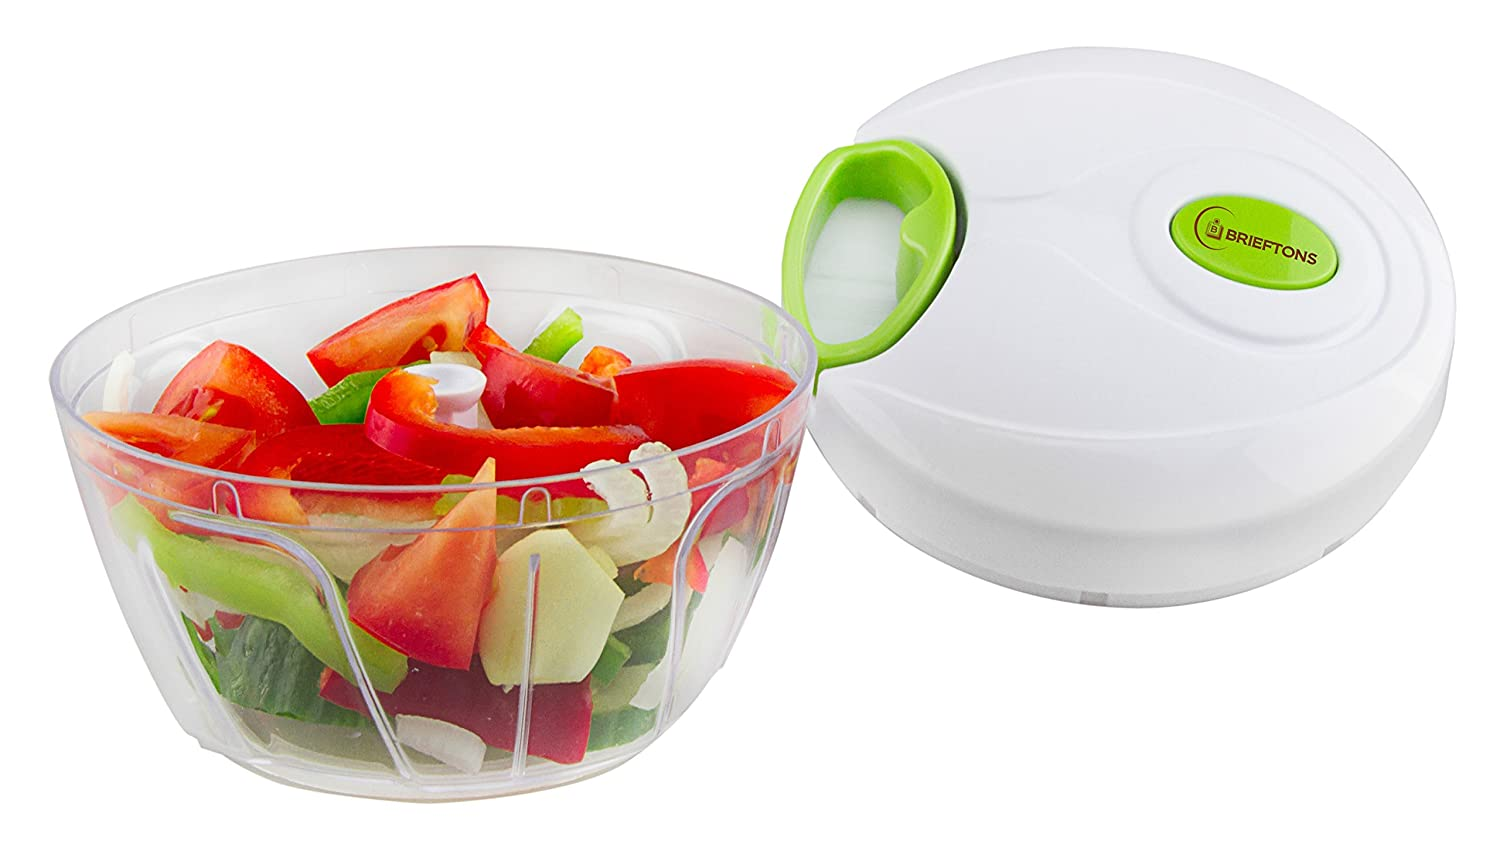 Amazon.com: Brieftons Manual Food Chopper, Compact And Powerful Hand Held  Vegetable Chopper/Mincer/Blender To Chop ...